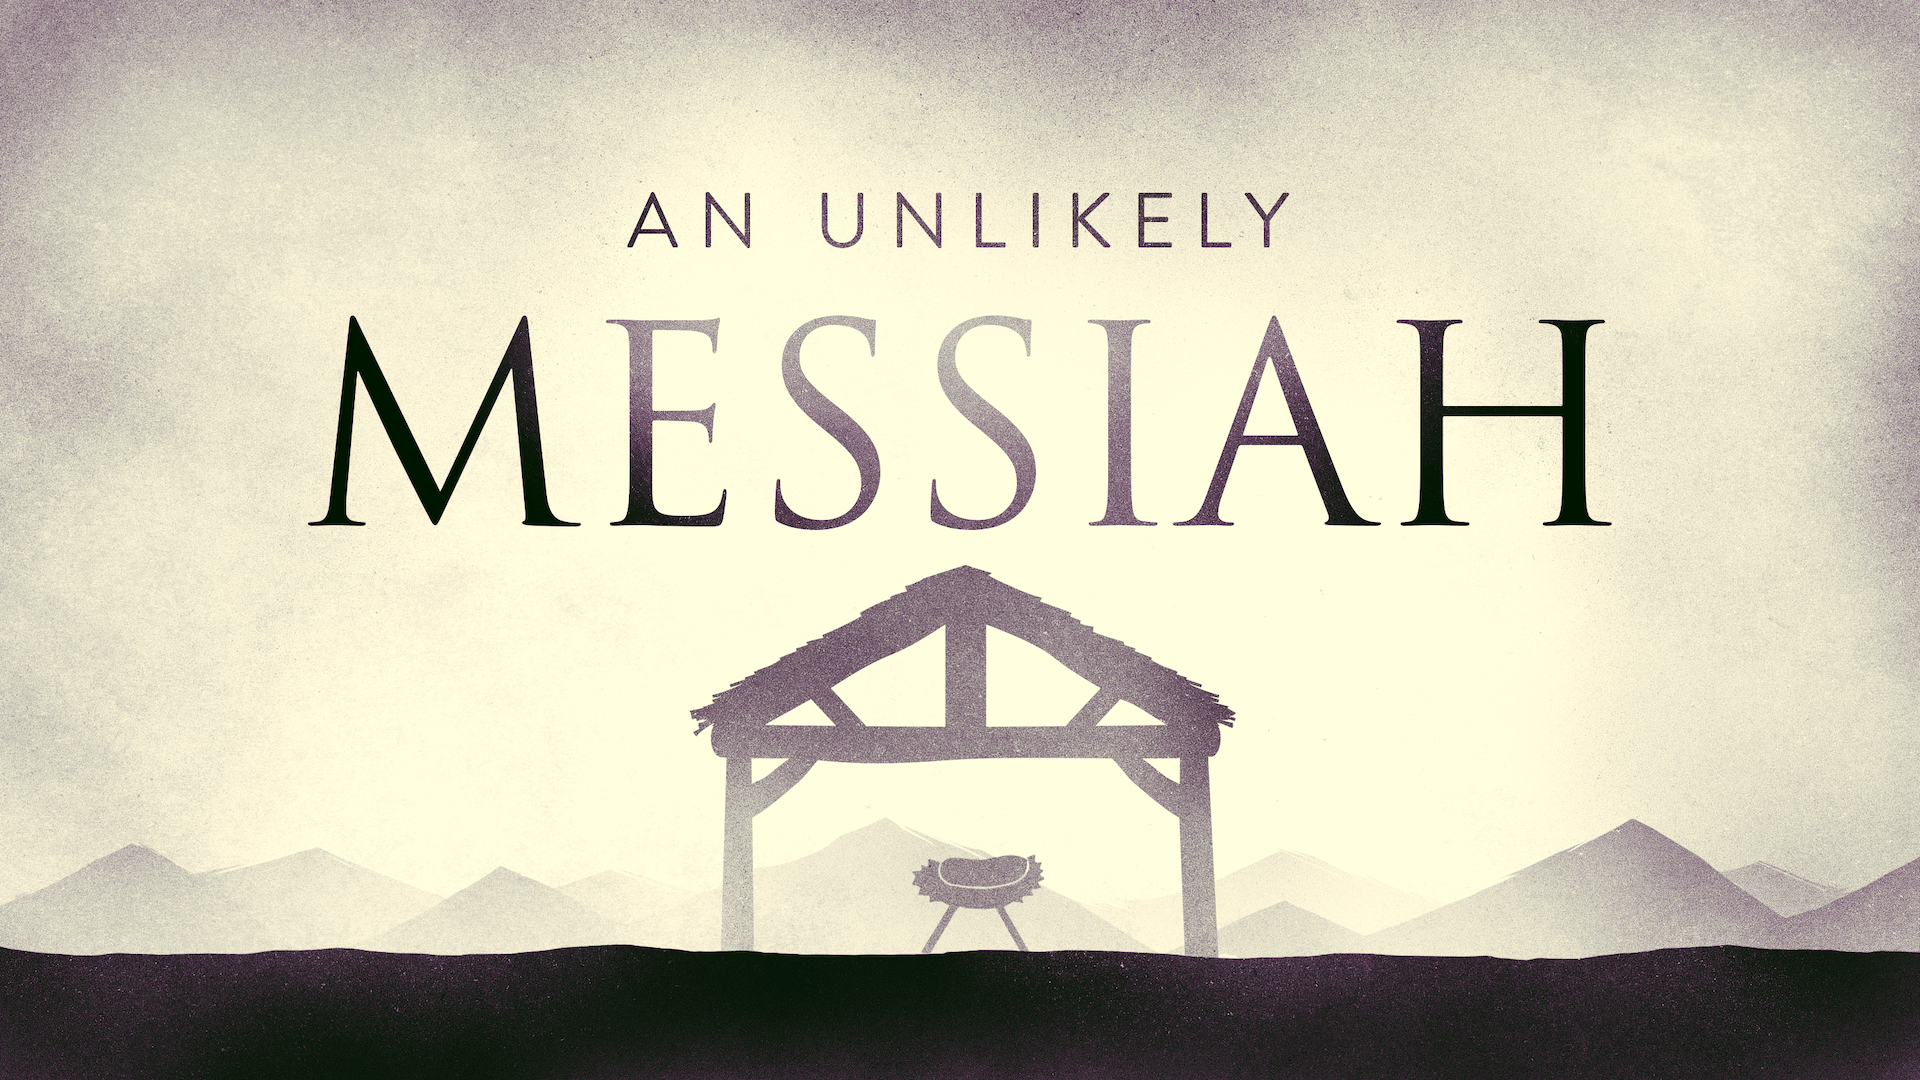 An Unlikely Messiah